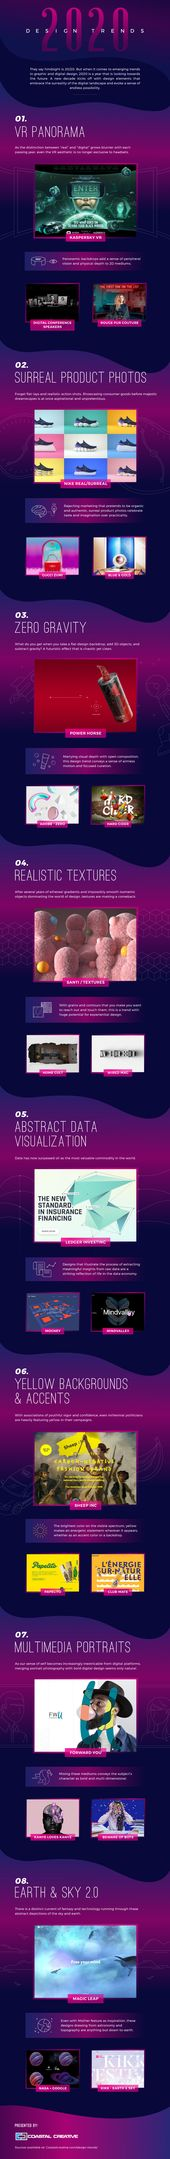 Top Digital & Graphic Design Trends For 2020